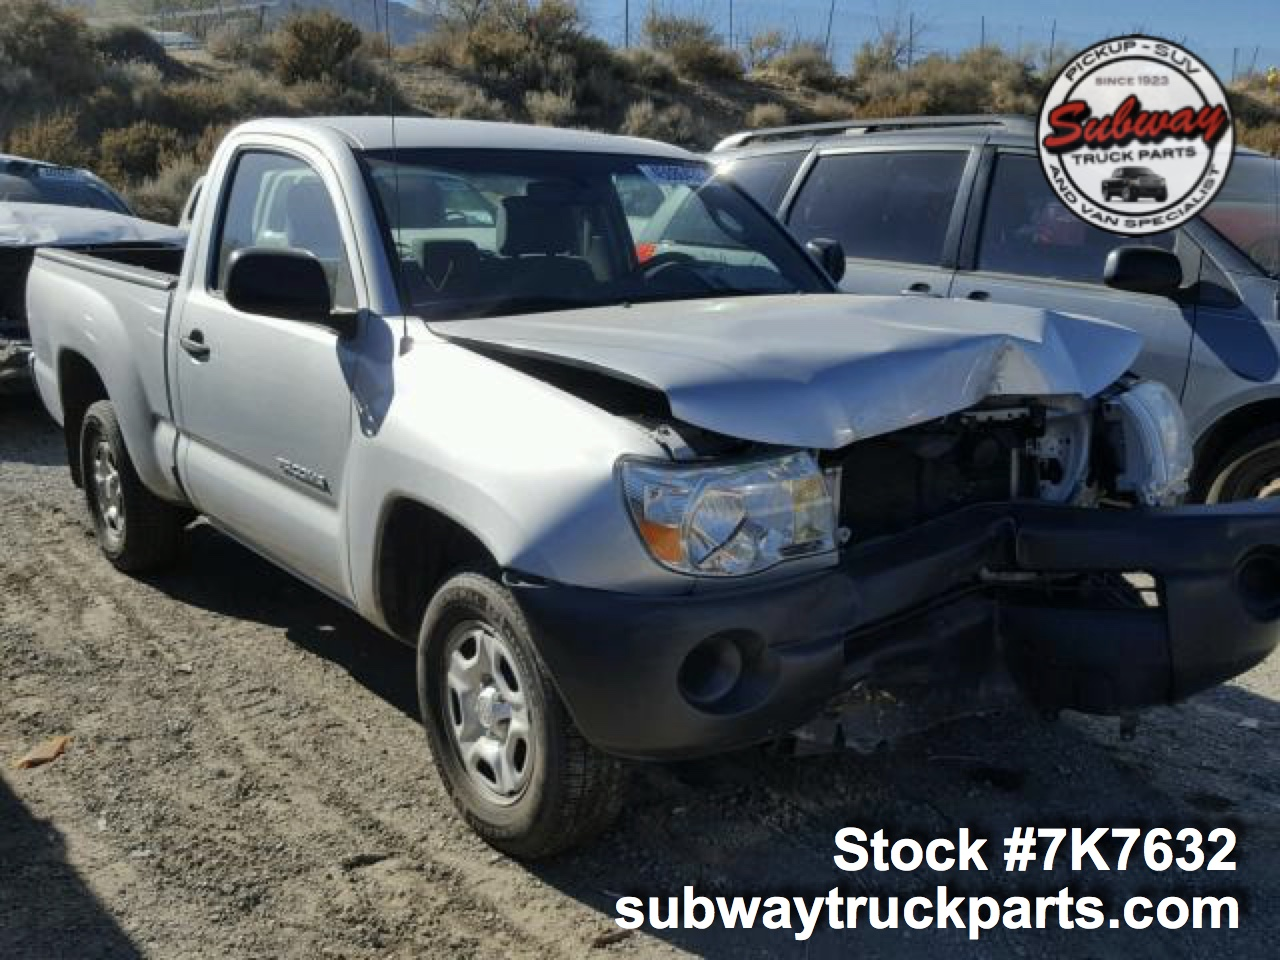 Toyota Used Parts >> Used Parts 2007 Toyota Tacoma 2 7l 4x2 Subway Truck Parts